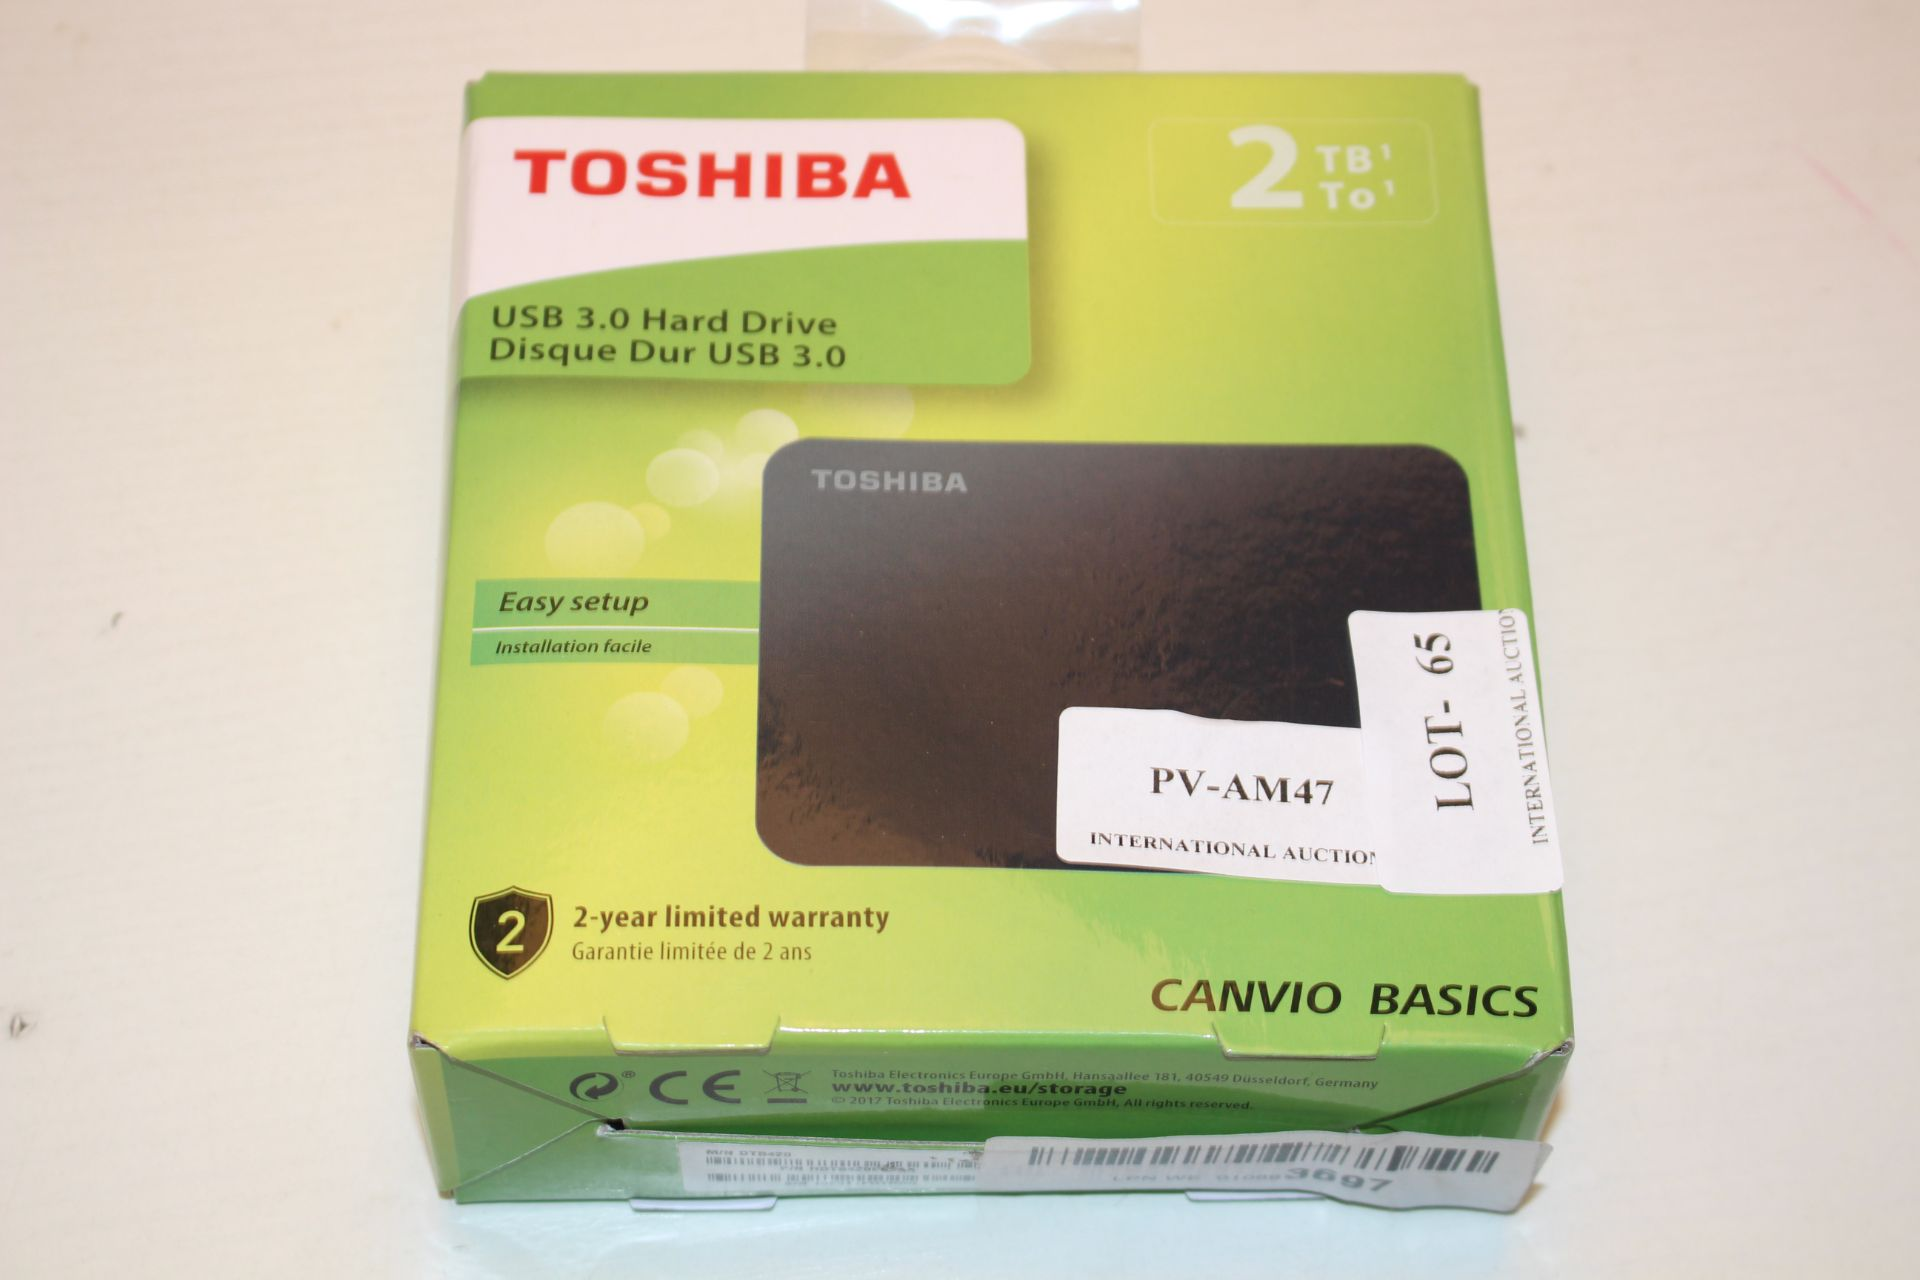 BOXED TOSHIBA 2TB USB 3.0 HARD DRIVE RRP £54.99Condition ReportAppraisal Available on Request- All